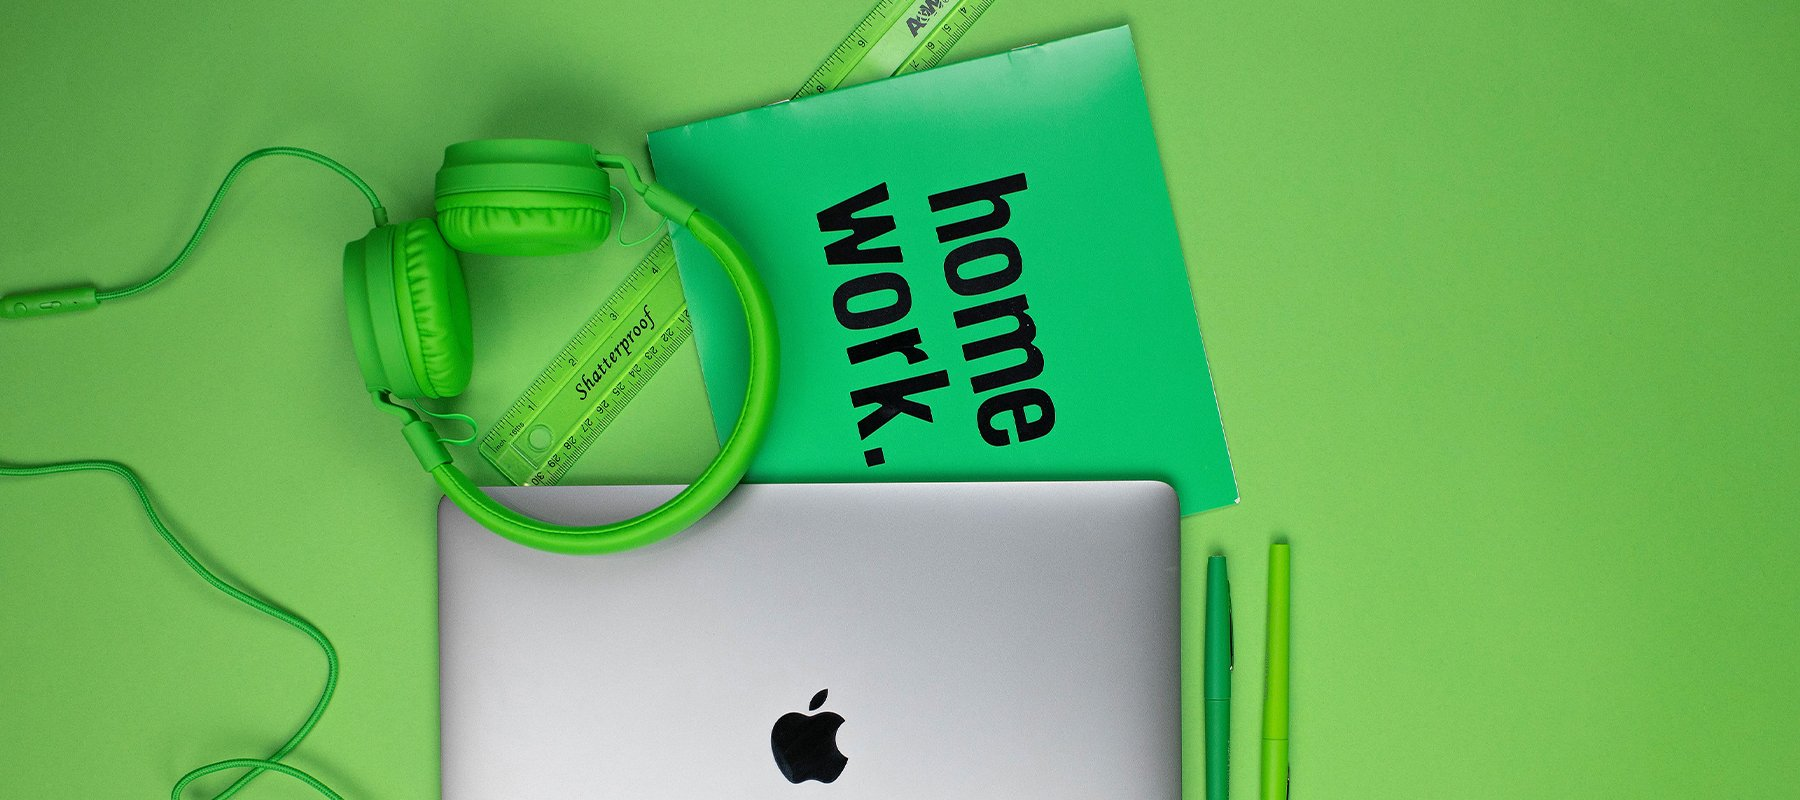 purobasic headphones for kids with apple laptop